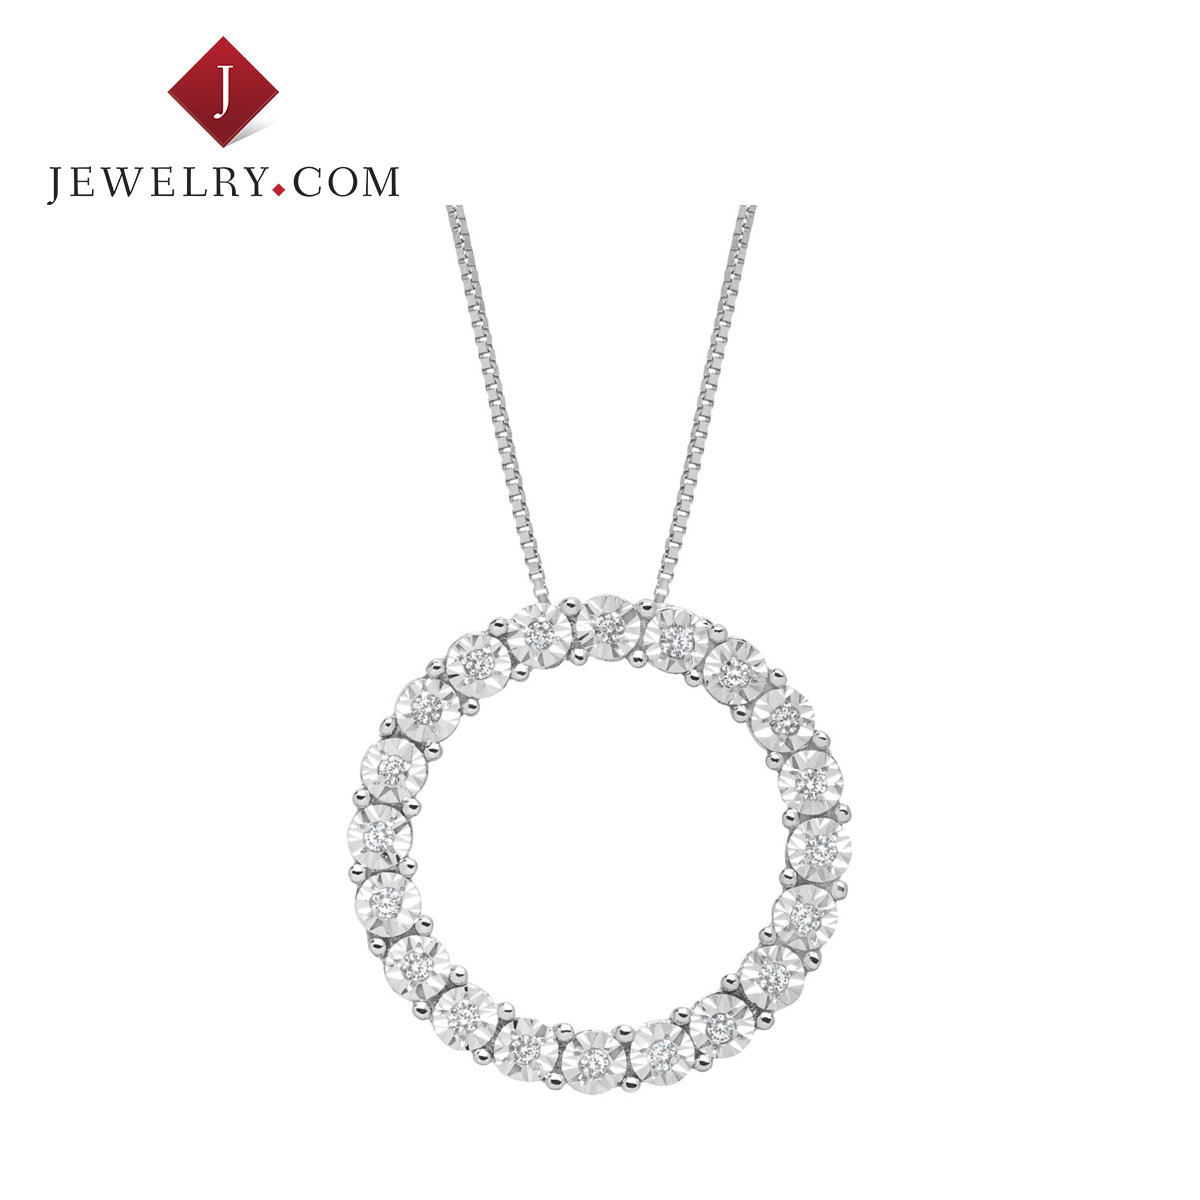 Jewelry.com official ms. charm pendant 0.1 karat k white gold round diamond inlaid fresh and simple